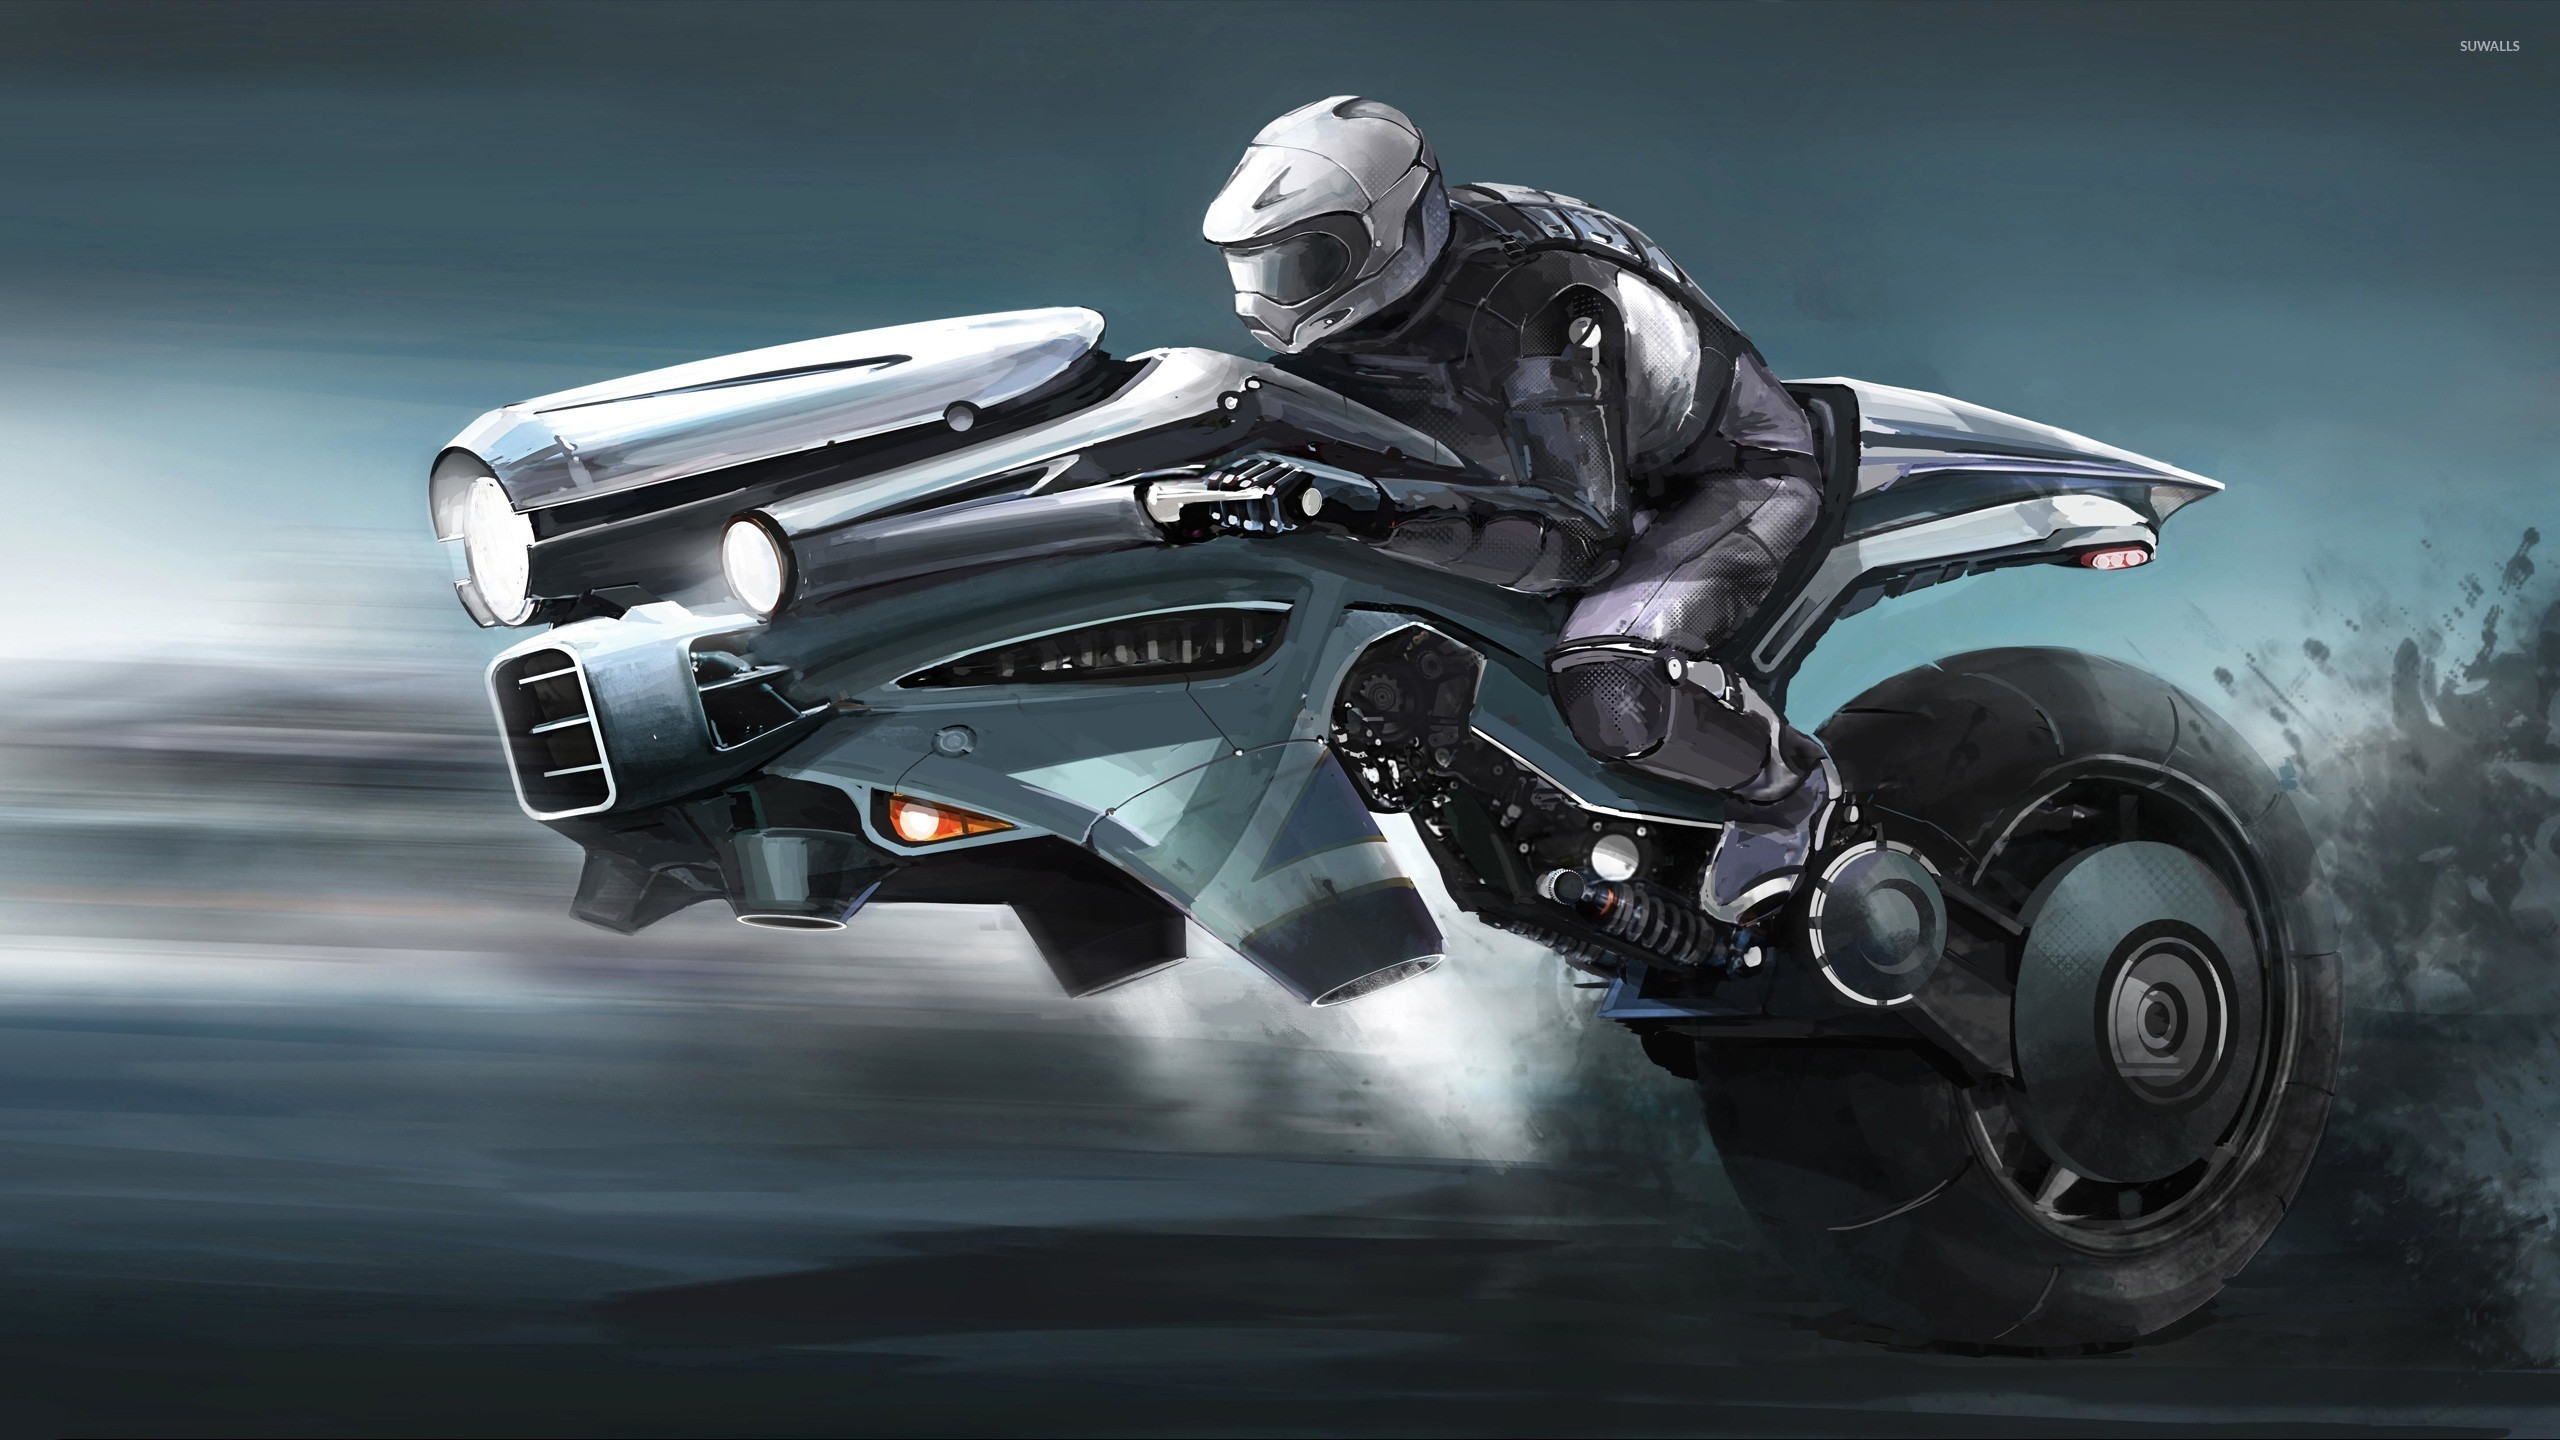 Motorcycle of the future wallpaper